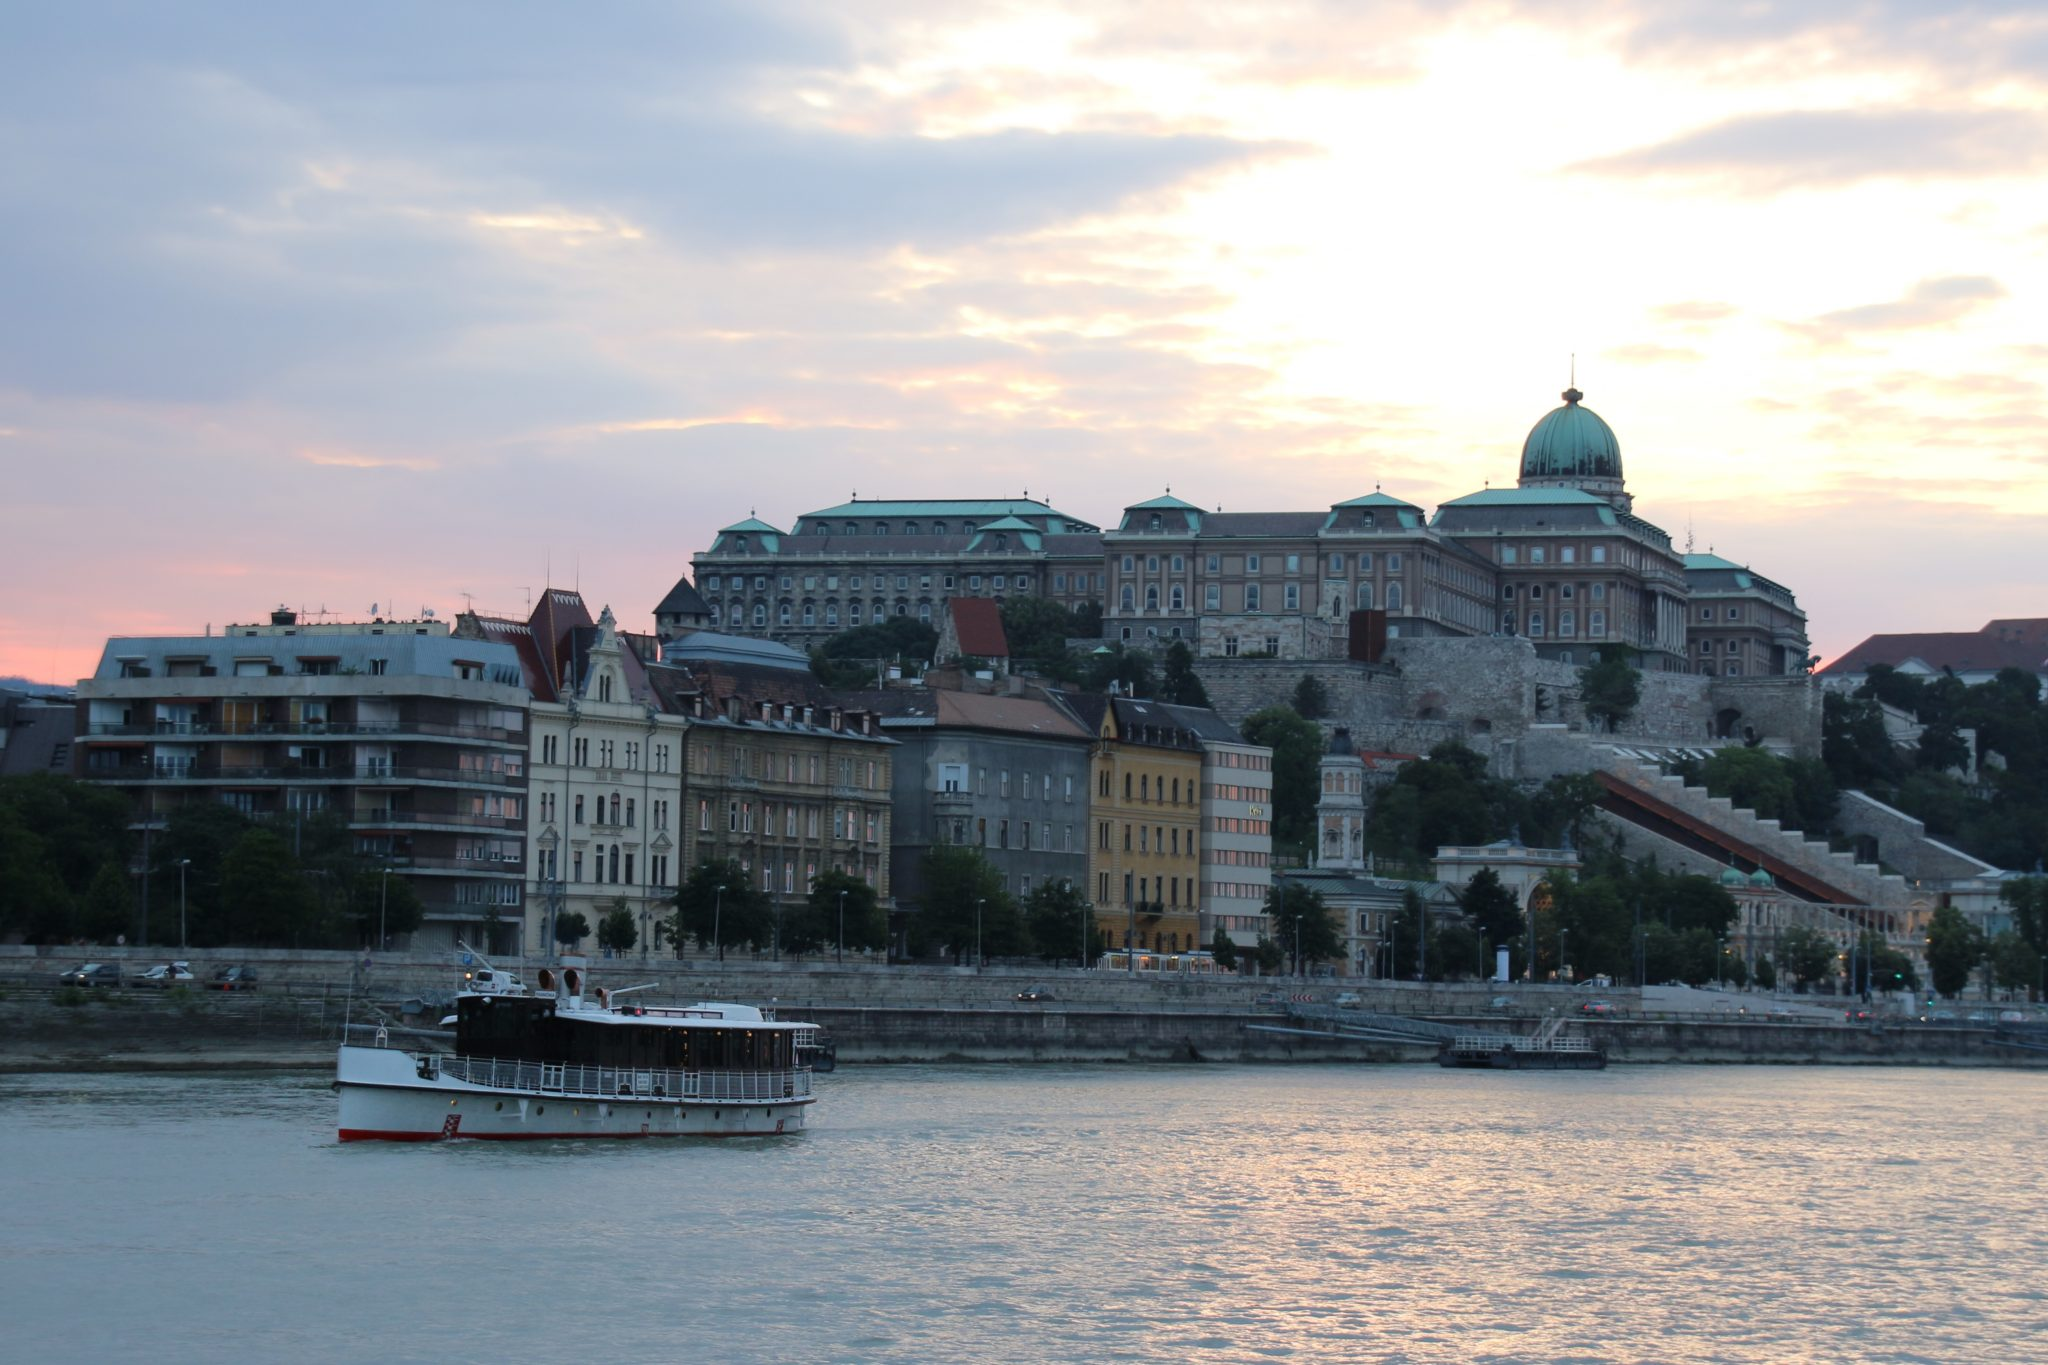 Sunset view of Buda Castle from the Evening Danube River Cruise, Budapest